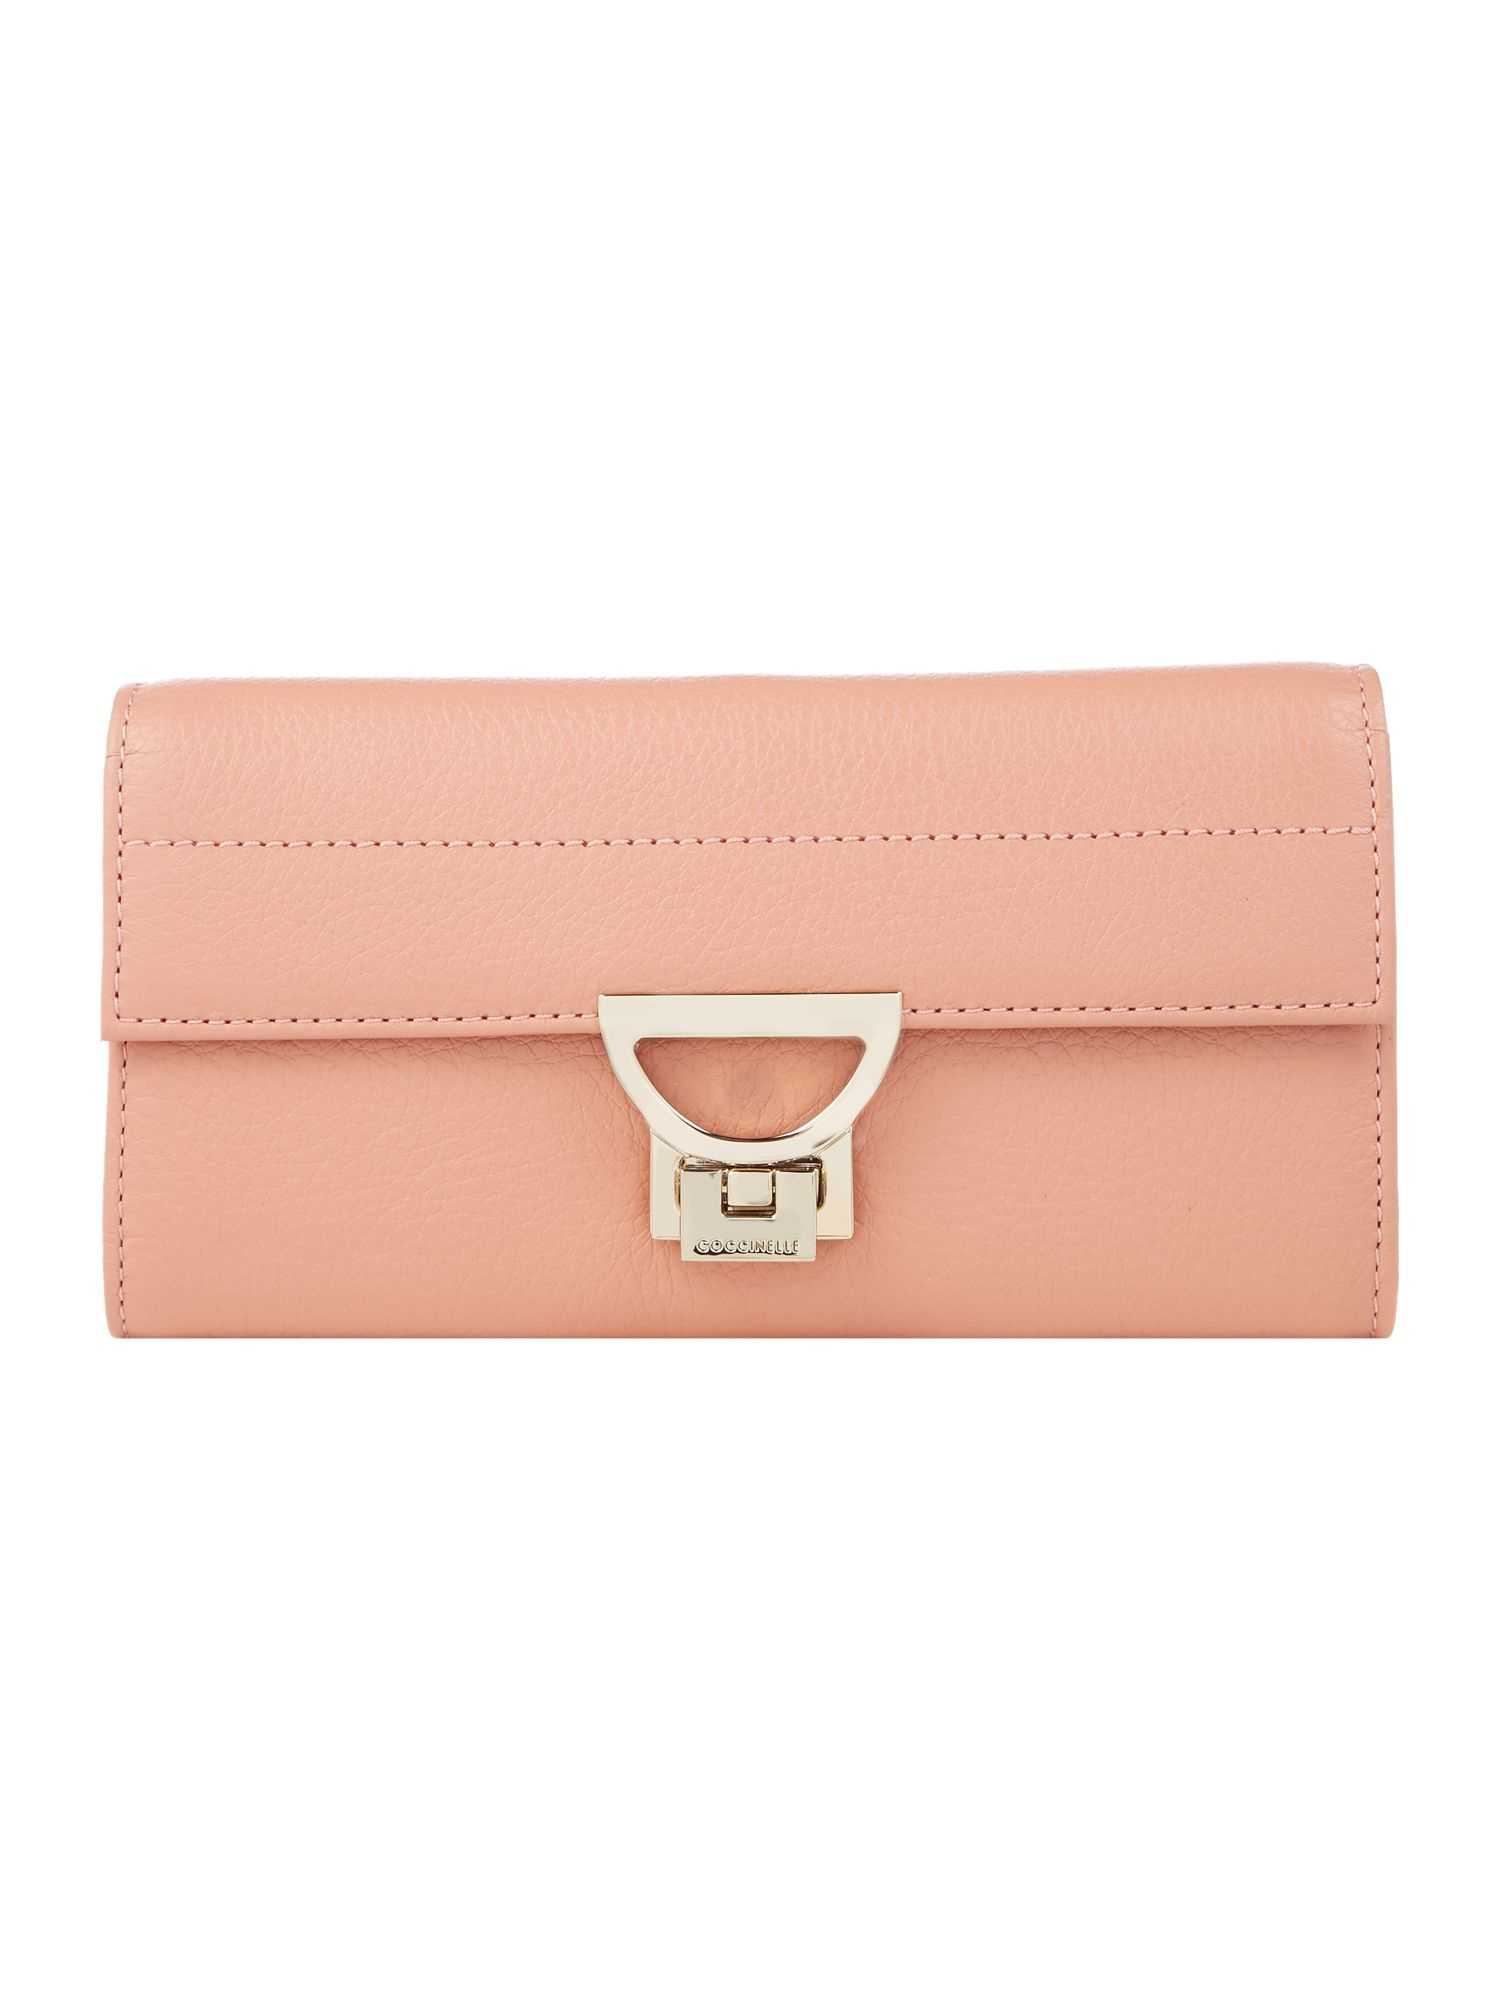 Coccinelle Coccinelle Arlettis Light Pink Flapover, Light Pink